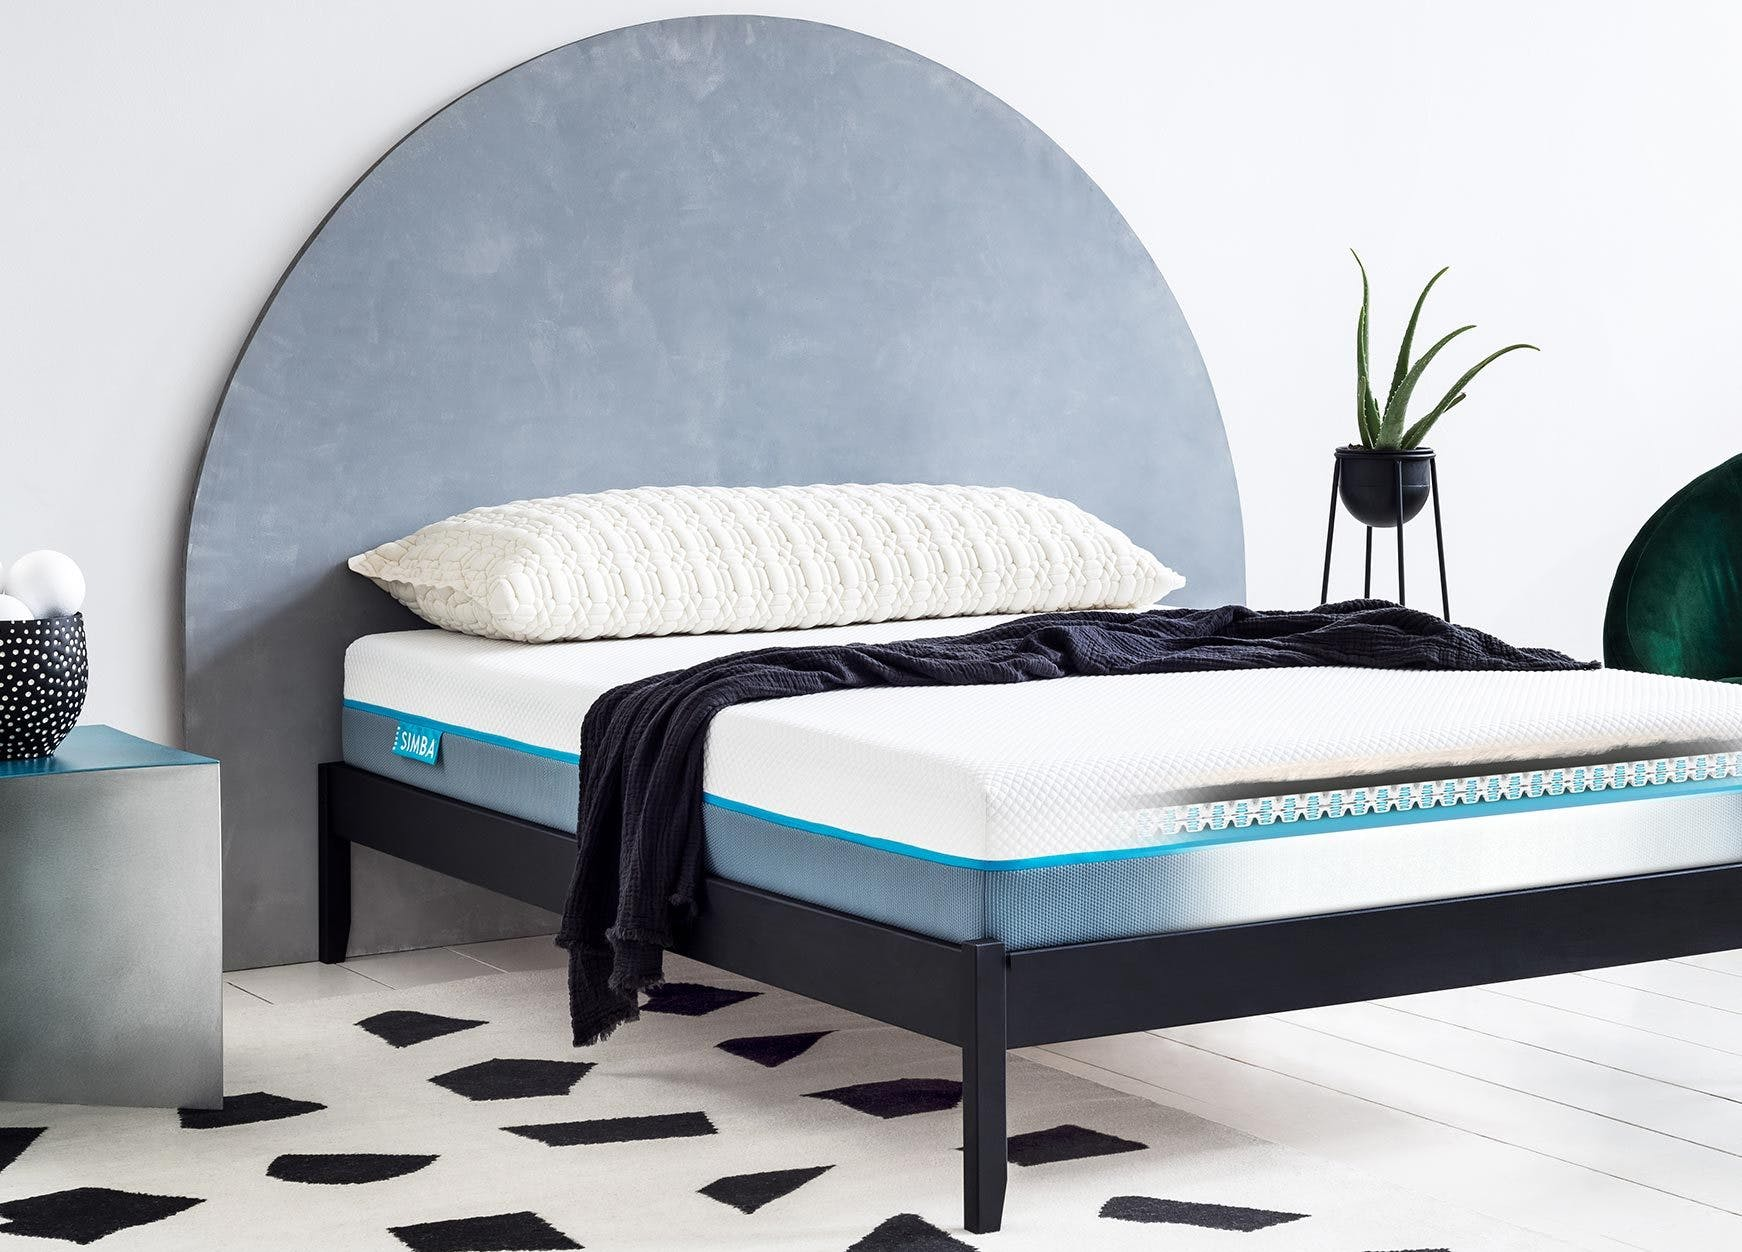 Simba Hybrid Pro Mattress Review Is This The Best Memory Foam Mattress And Worth The Upgrade Over The Standard Simba Mighty Gadget Blog Uk Technology News And Reviews